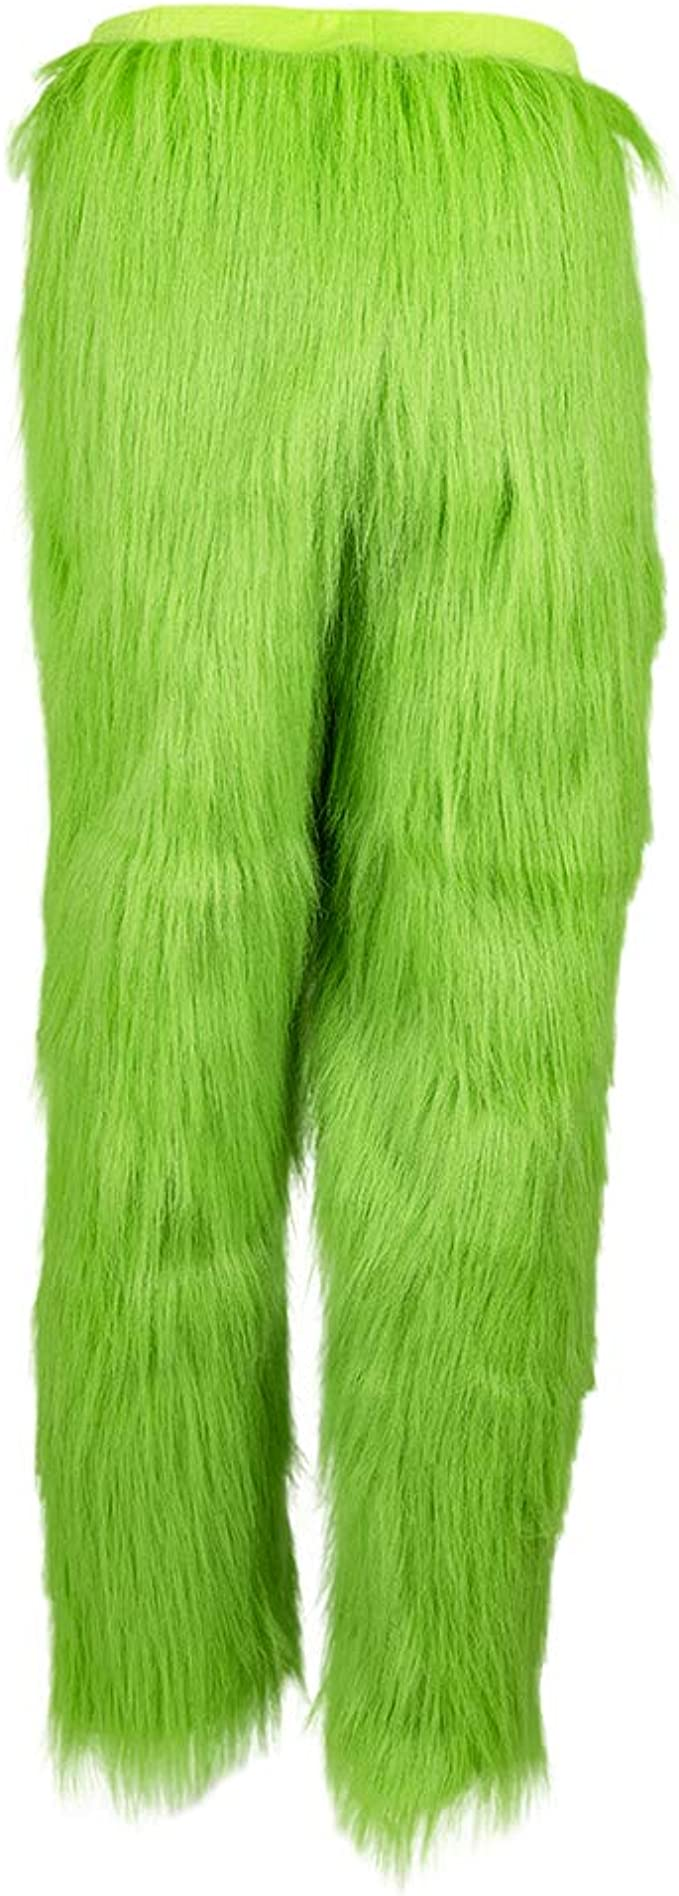 Kenyaw Jumpsuit Mens Christmas Furry Plush Green Gloves Cosplay Furry Gloves Halloween Party Cosplay Props